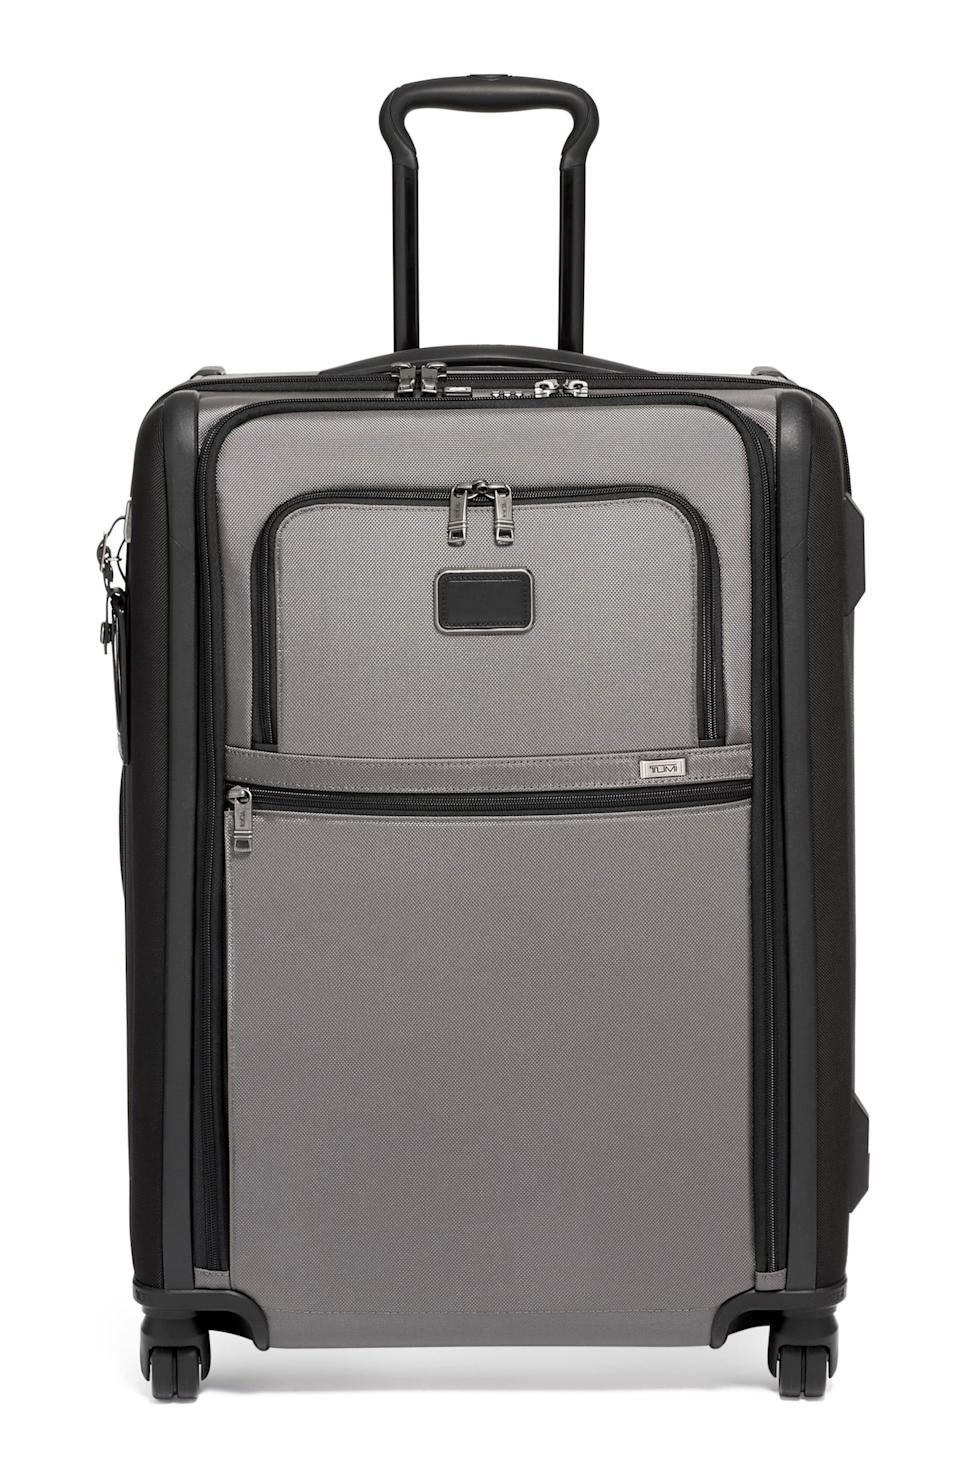 """<p><strong>TUMI</strong></p><p>nordstrom.com</p><p><strong>$595.90</strong></p><p><a href=""""https://go.redirectingat.com?id=74968X1596630&url=https%3A%2F%2Fwww.nordstrom.com%2Fs%2Ftumi-alpha-2-short-trip-rolling-four-wheel-packing-case%2F5594912&sref=https%3A%2F%2Fwww.veranda.com%2Fluxury-lifestyle%2Fg33484341%2Fnordstrom-anniversary-sale-2020%2F"""" rel=""""nofollow noopener"""" target=""""_blank"""" data-ylk=""""slk:Discover"""" class=""""link rapid-noclick-resp"""">Discover</a></p><p>This suitcase is just begging to be whisked away across the pond (as you likely are as well). This heavy-duty piece of luggage is still lightweight and easy to maneuver, with a three-stage telescoping handle system—perfect for running through the airport! </p>"""